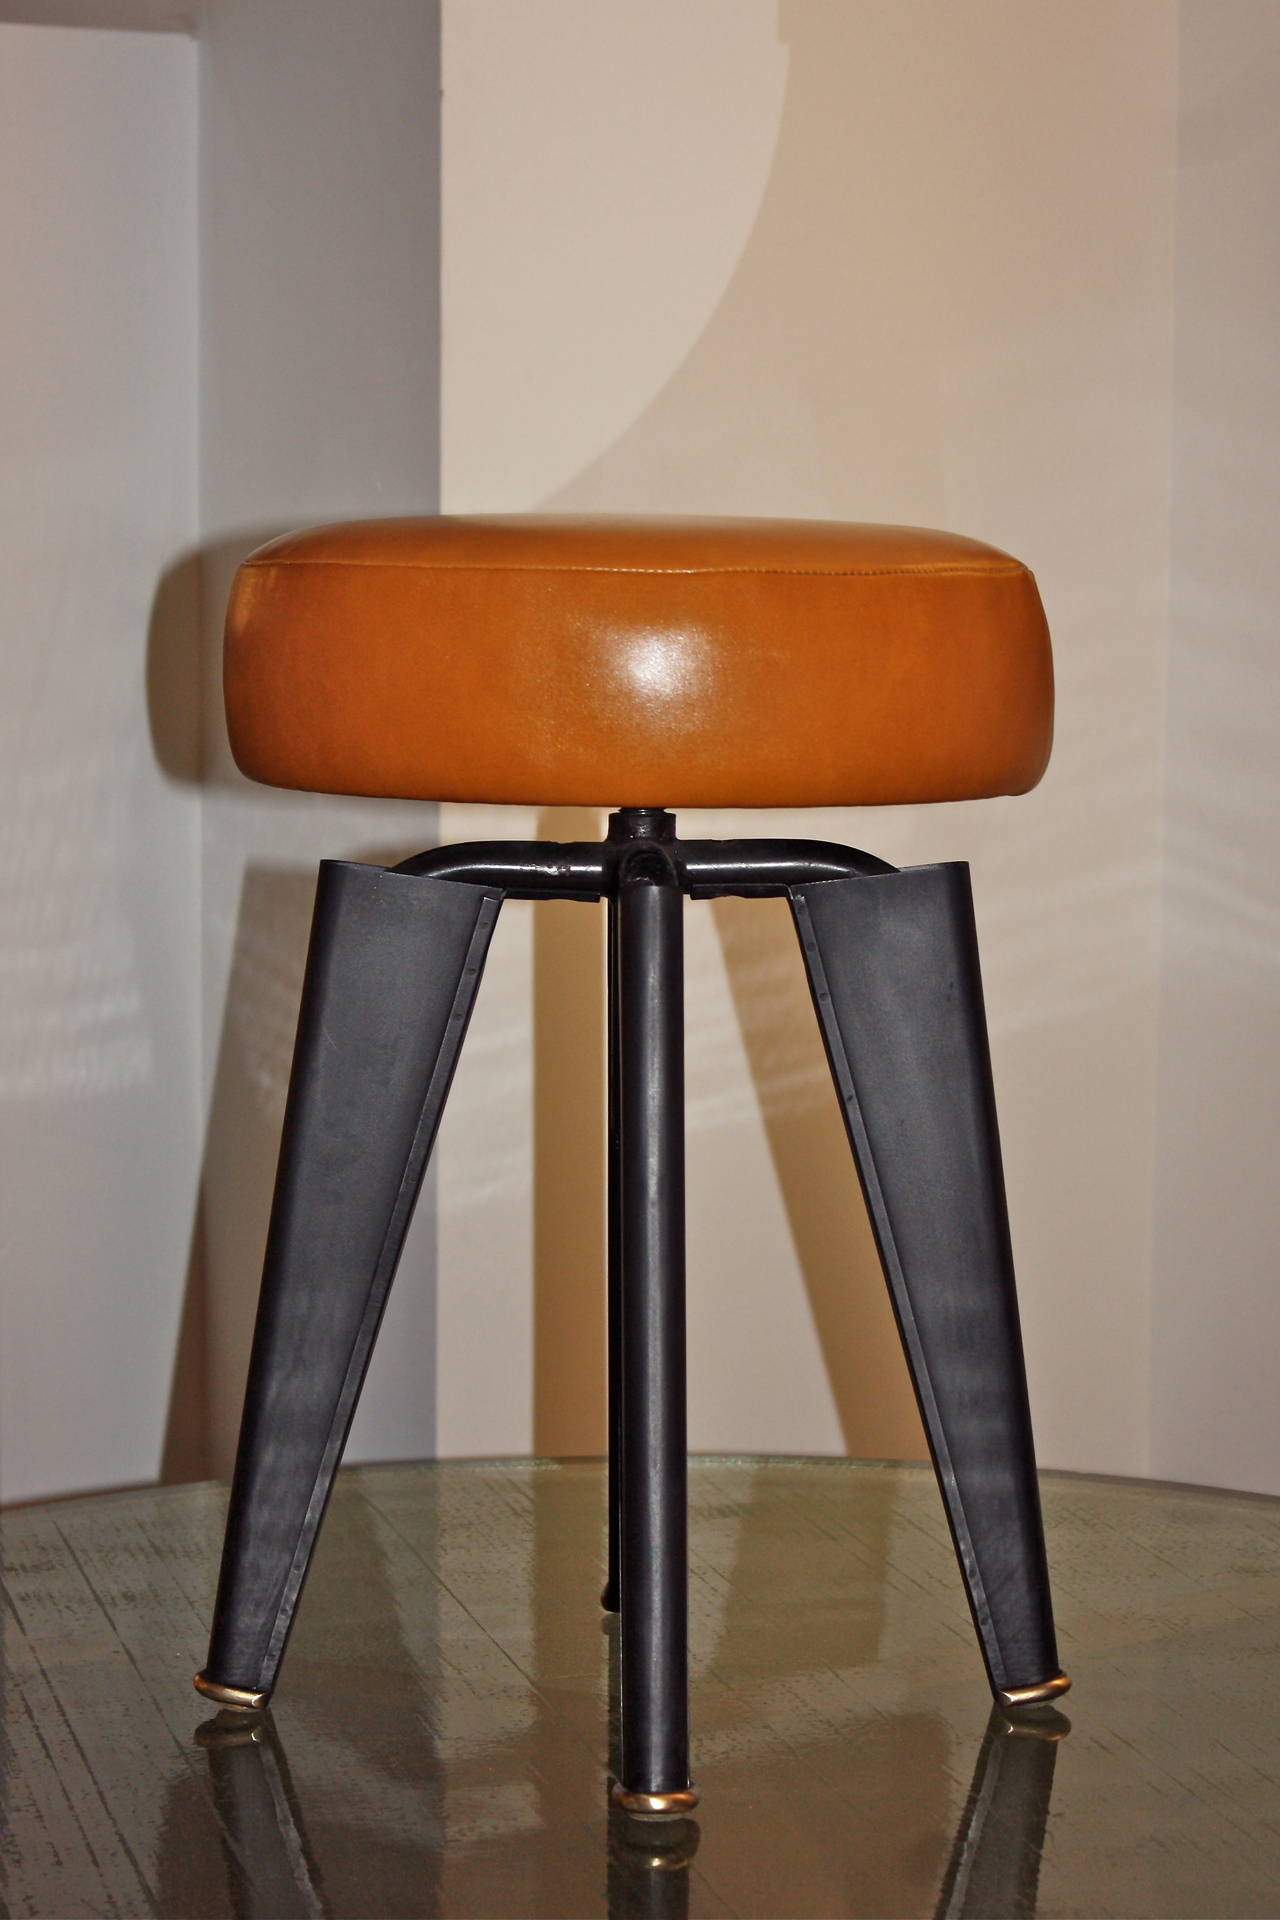 Pair of Piano Stools by Dominique for the Clemenceau Aircraft Carrier 3